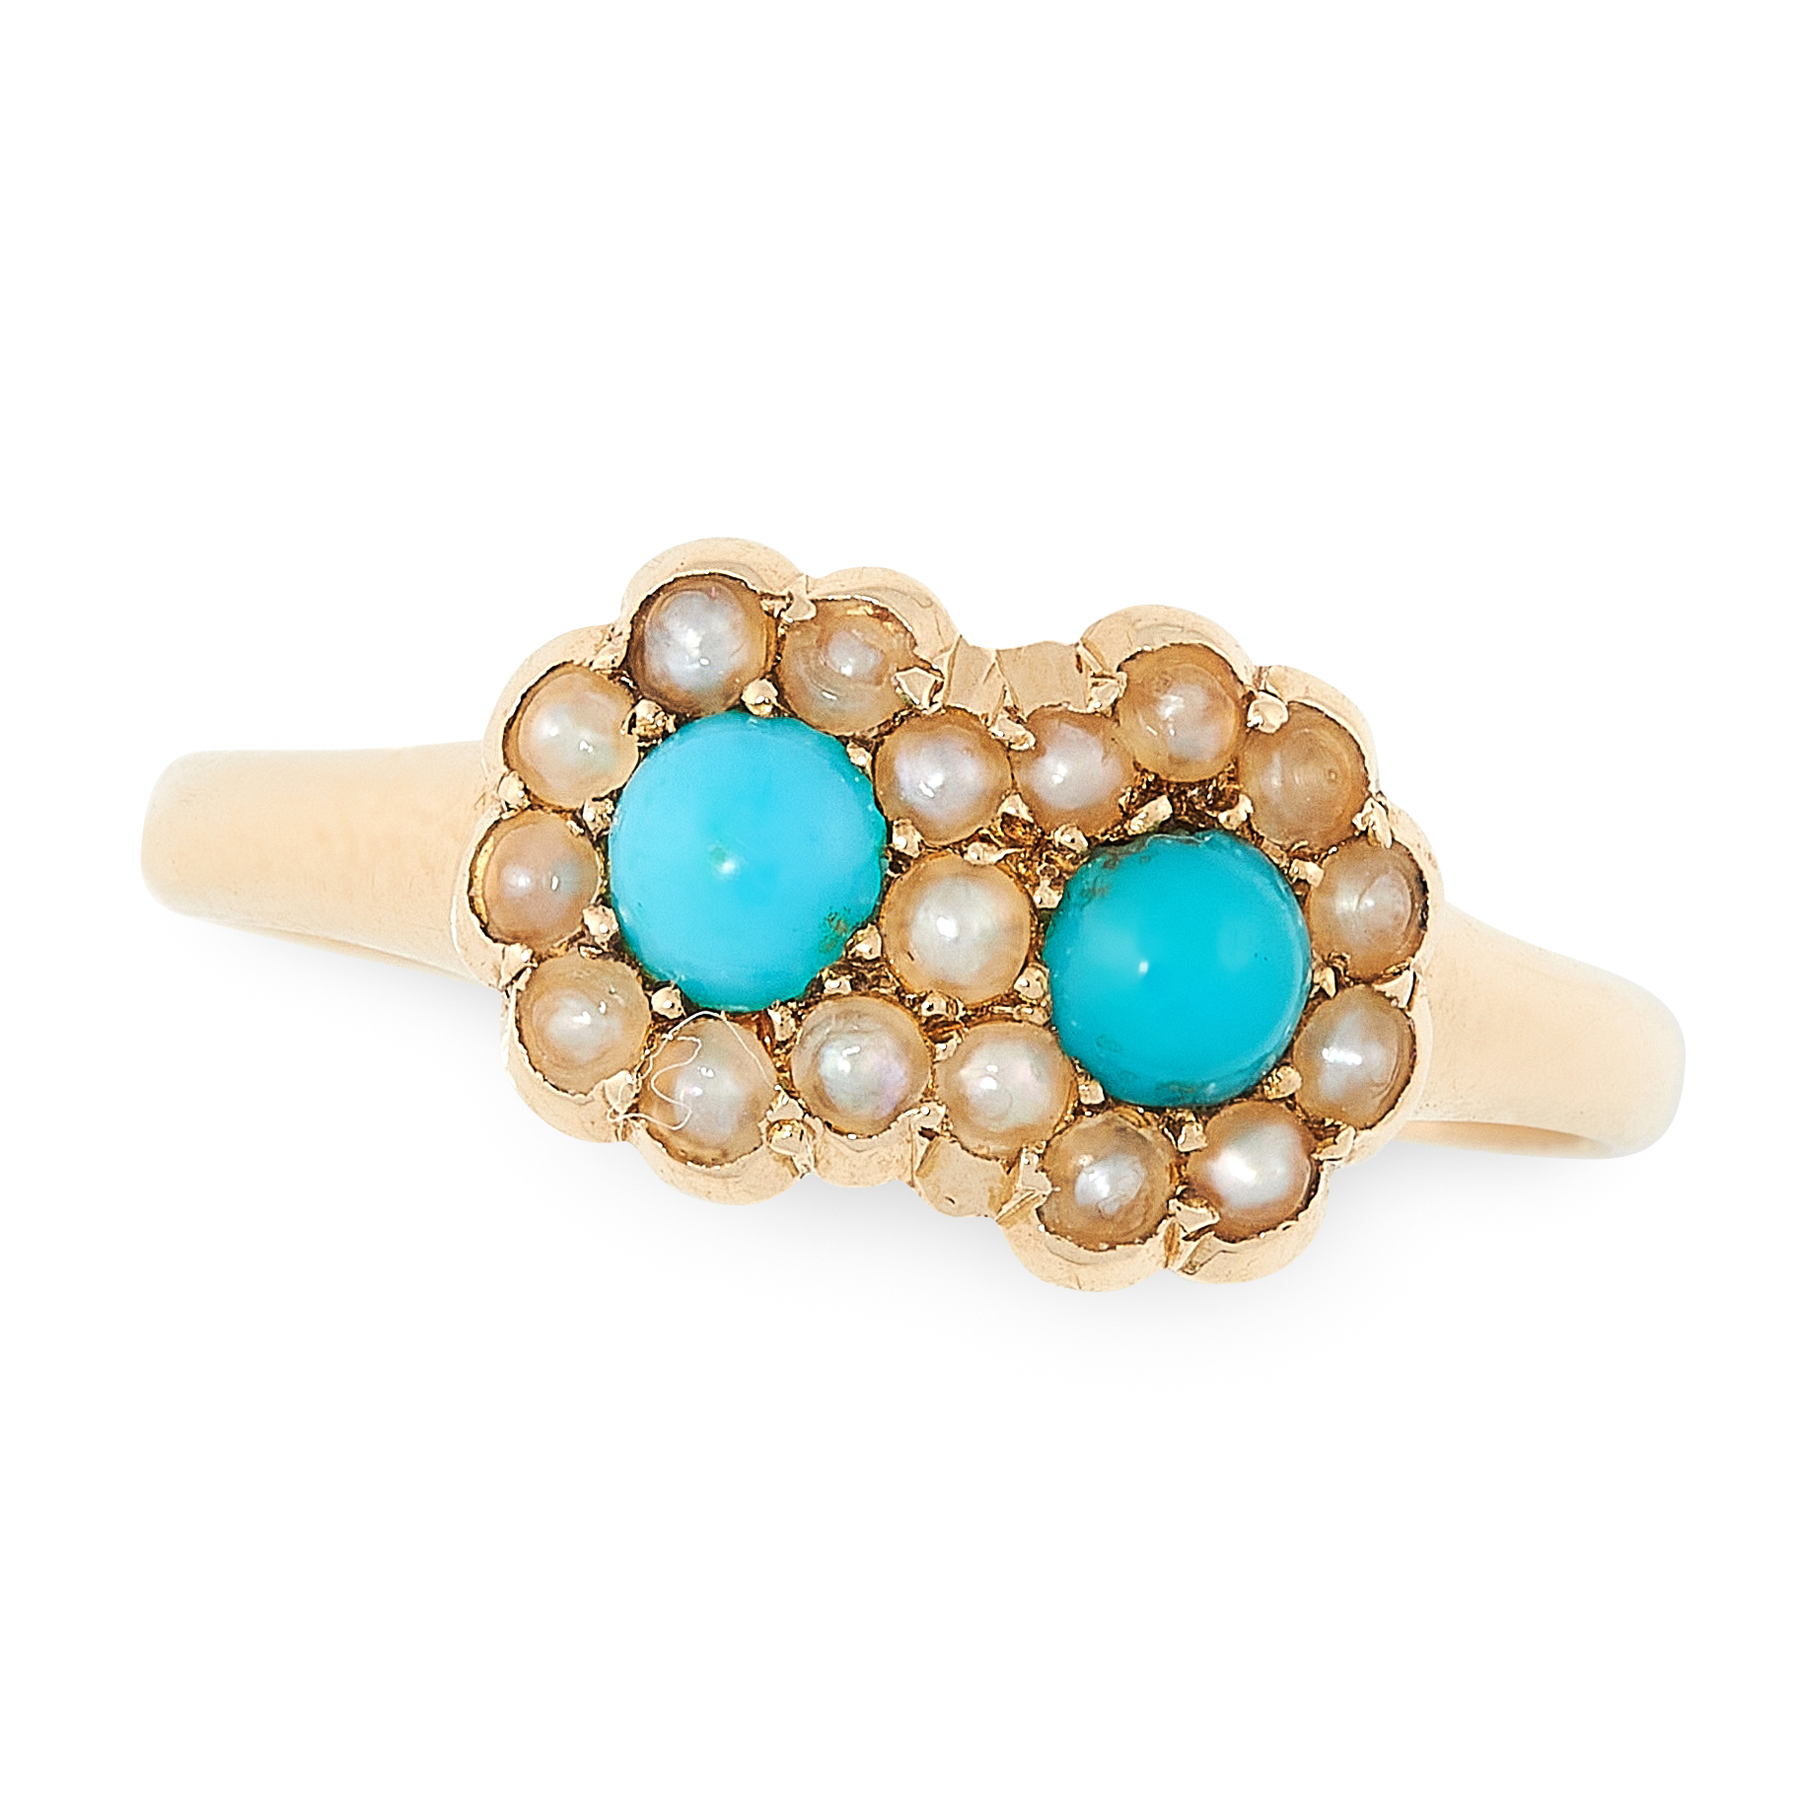 AN ANTIQUE VICTORIAN TURQUOISE AND PEARL DRESS RING in 18ct yellow gold set with two clusters of